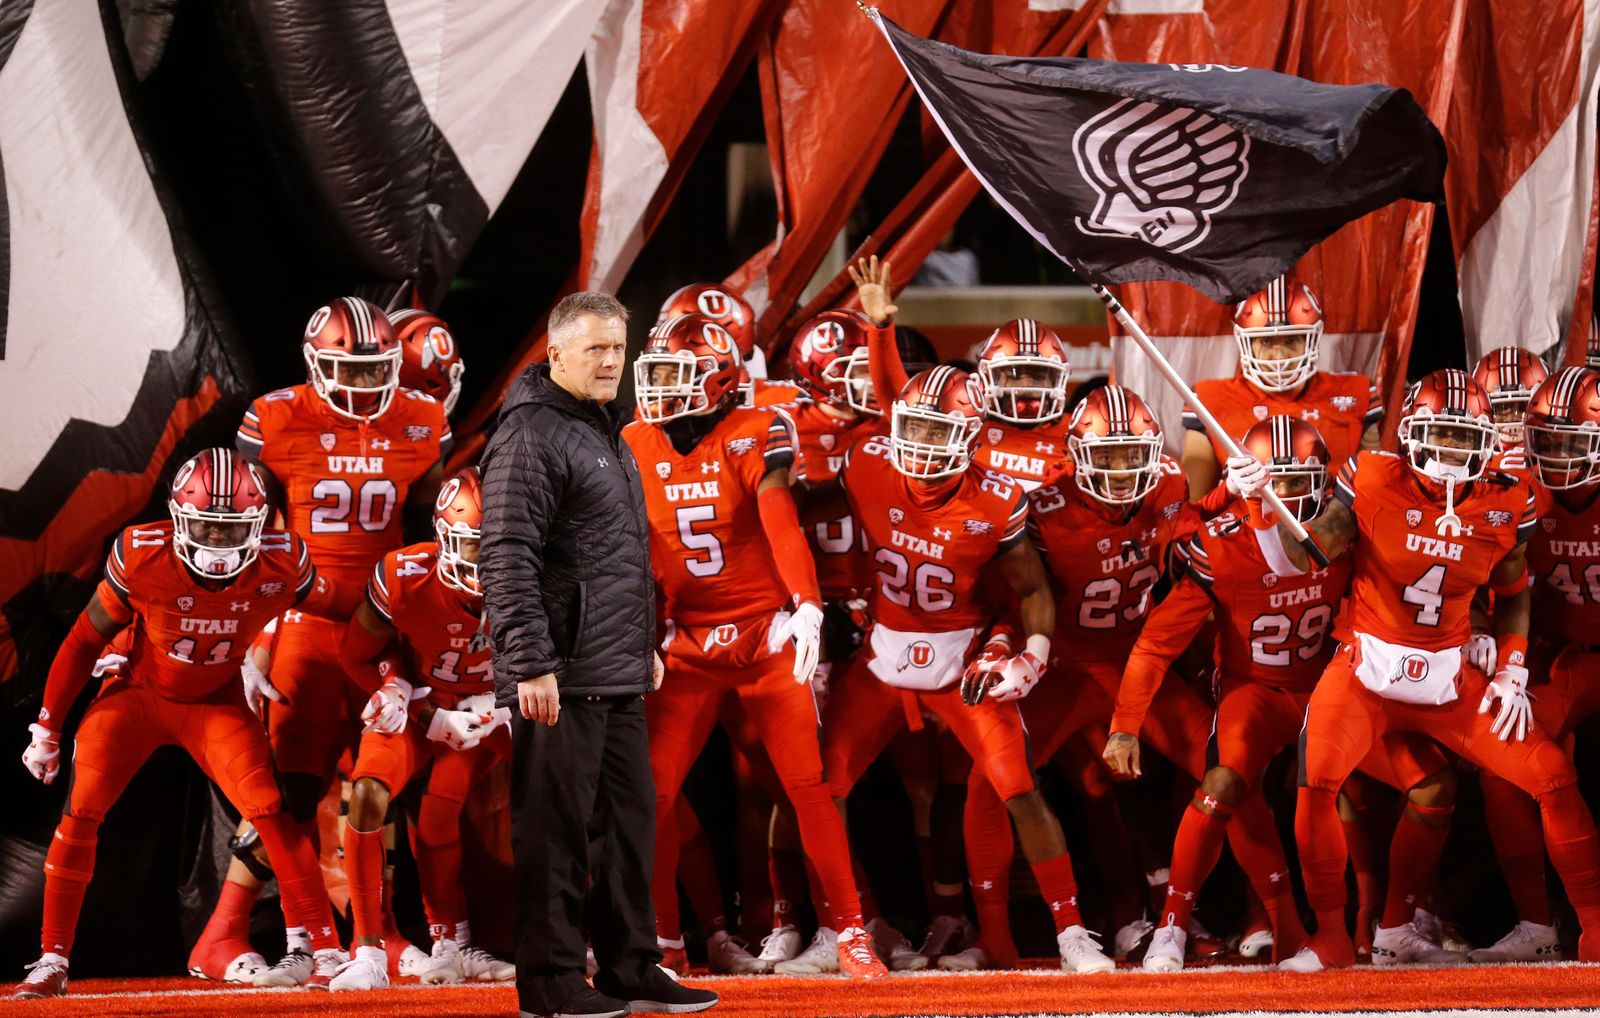 FILE - In this Nov. 24, 2018, file photo, Utah head coach Kyle Whittingham and his team prepares to take the field prior to their game against the BYU during an NCAA college football game, in Salt Lake City. The Utes were selected to win the Pac-12 in the preseason media poll and they're also ranked in the preseason coaches' poll. (AP Photo/Rick Bowmer, File)